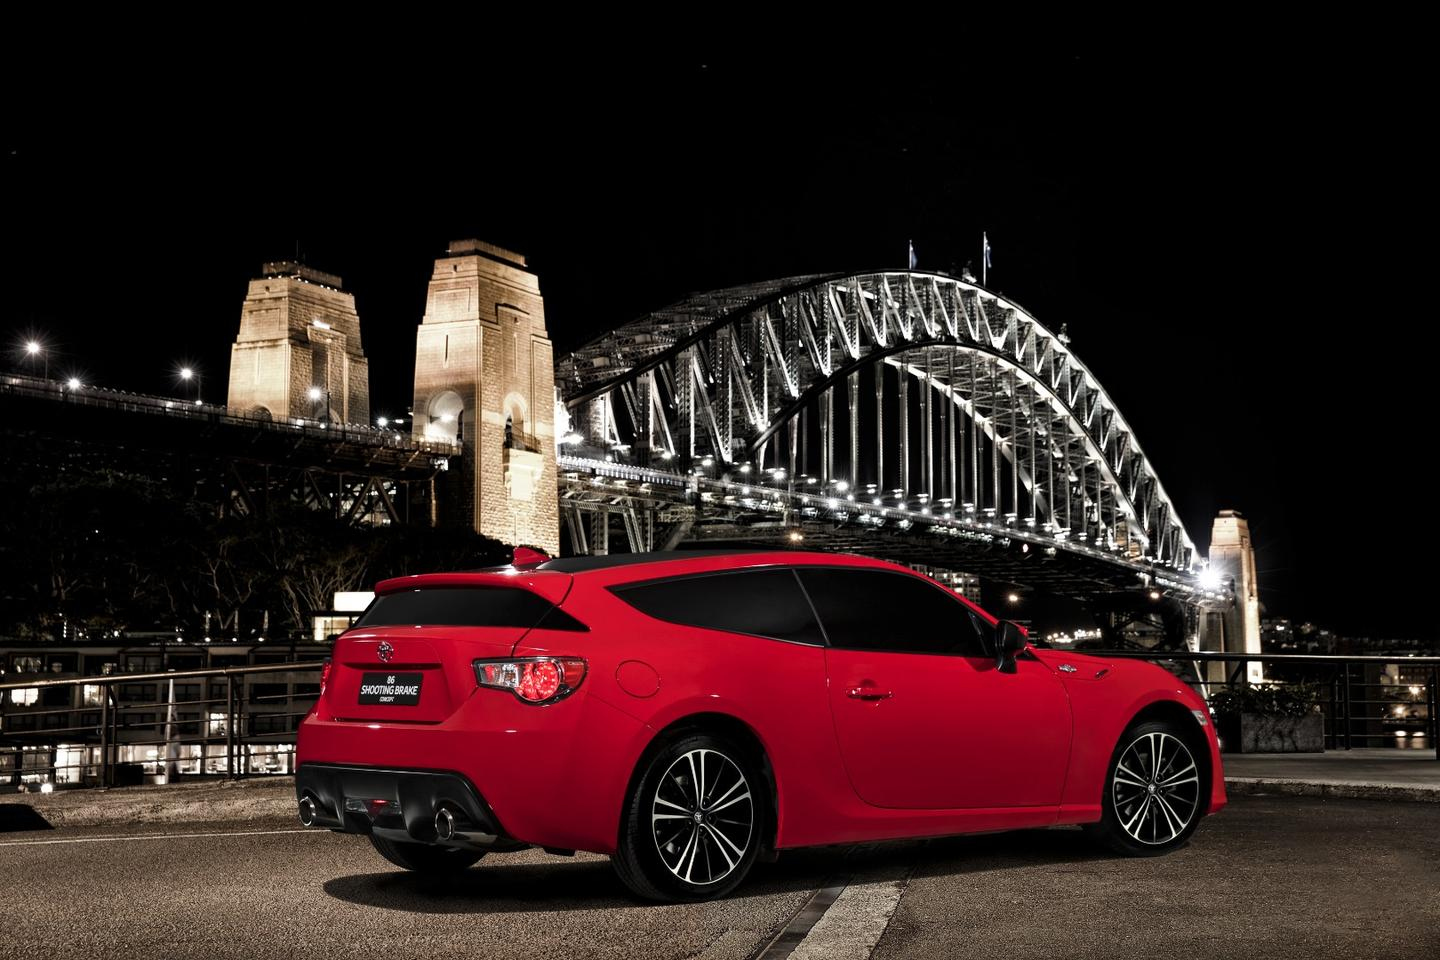 The Toyota GT86 Shooting Brake in Sydney